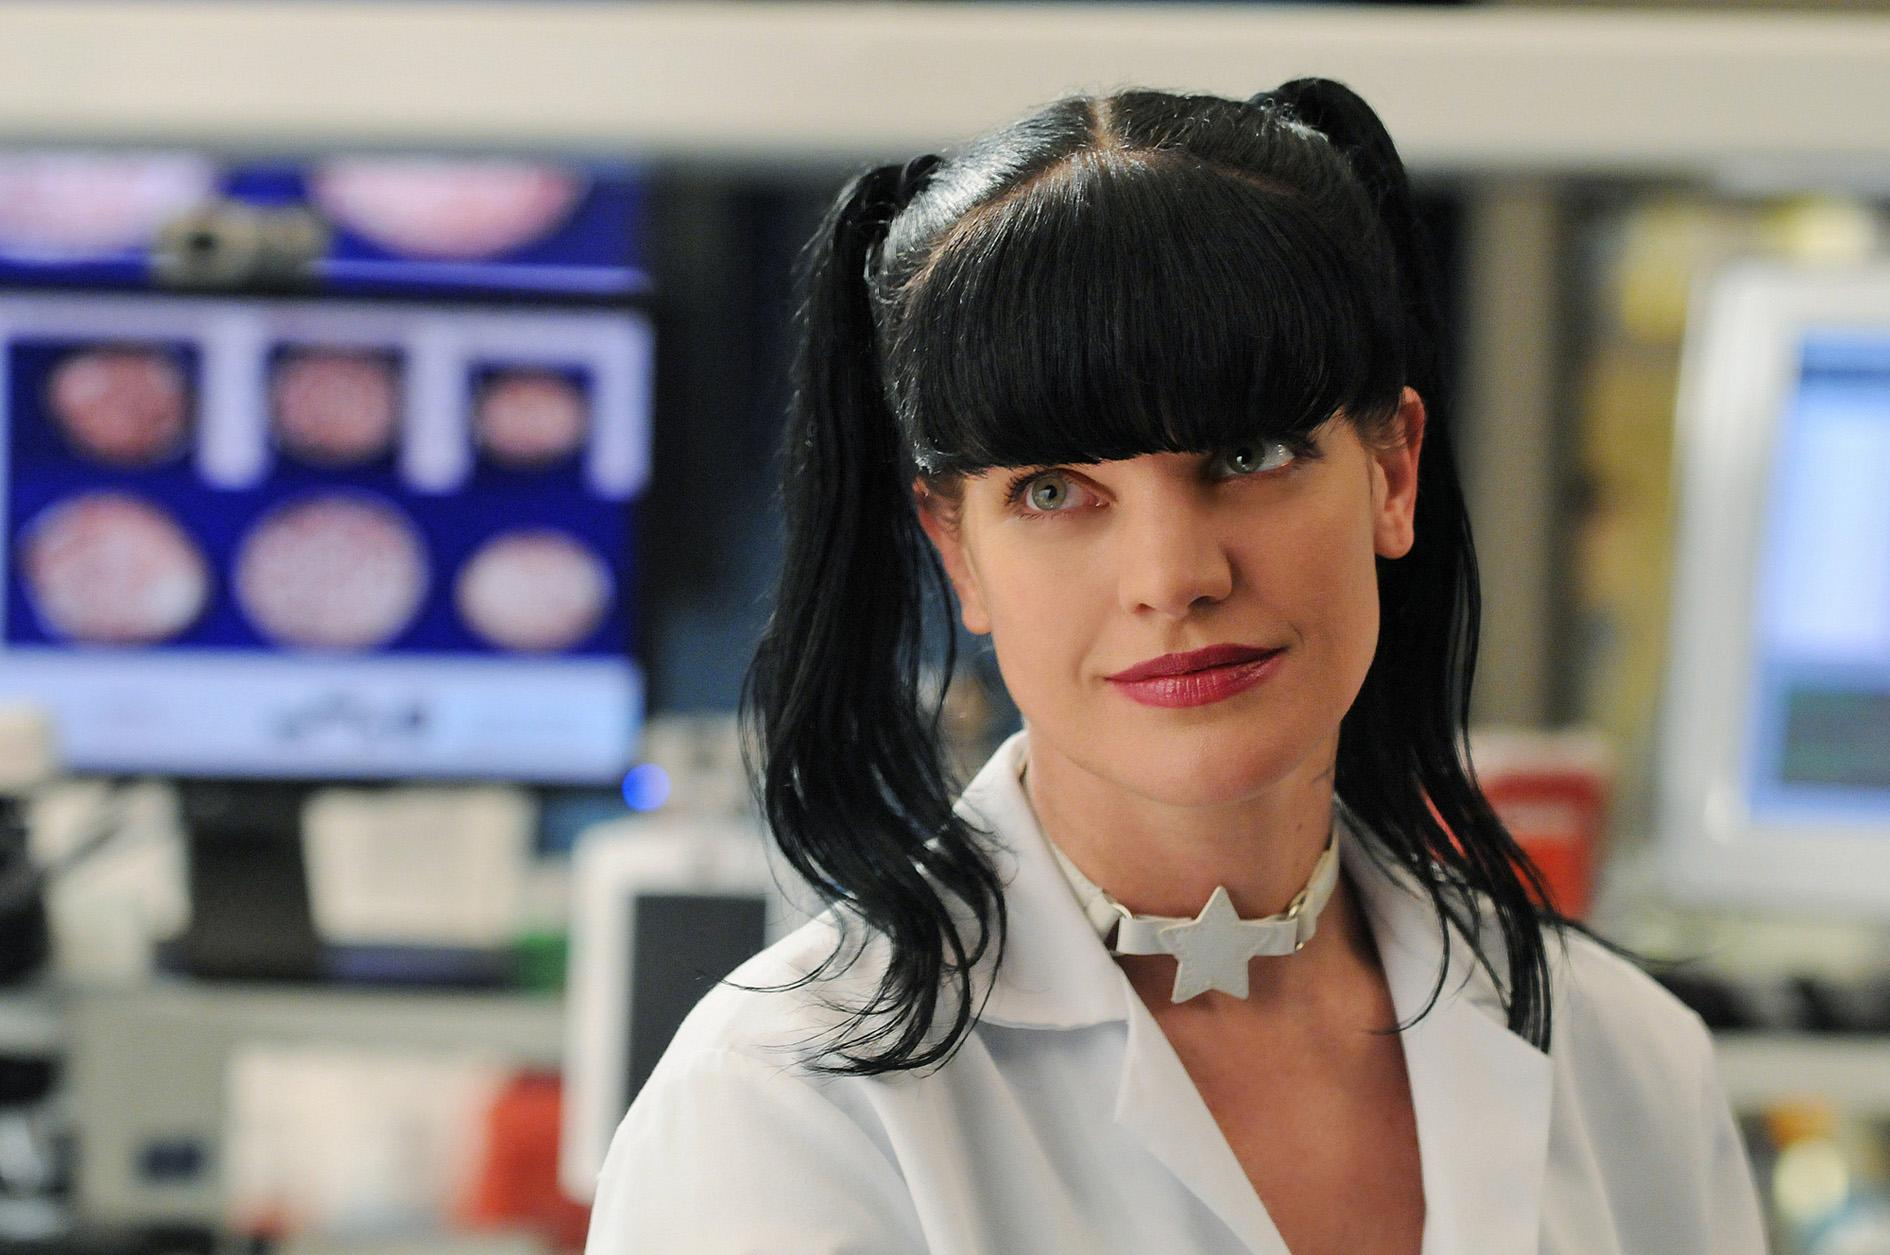 Speaking, would pauley perrette abby sciuto pity, that